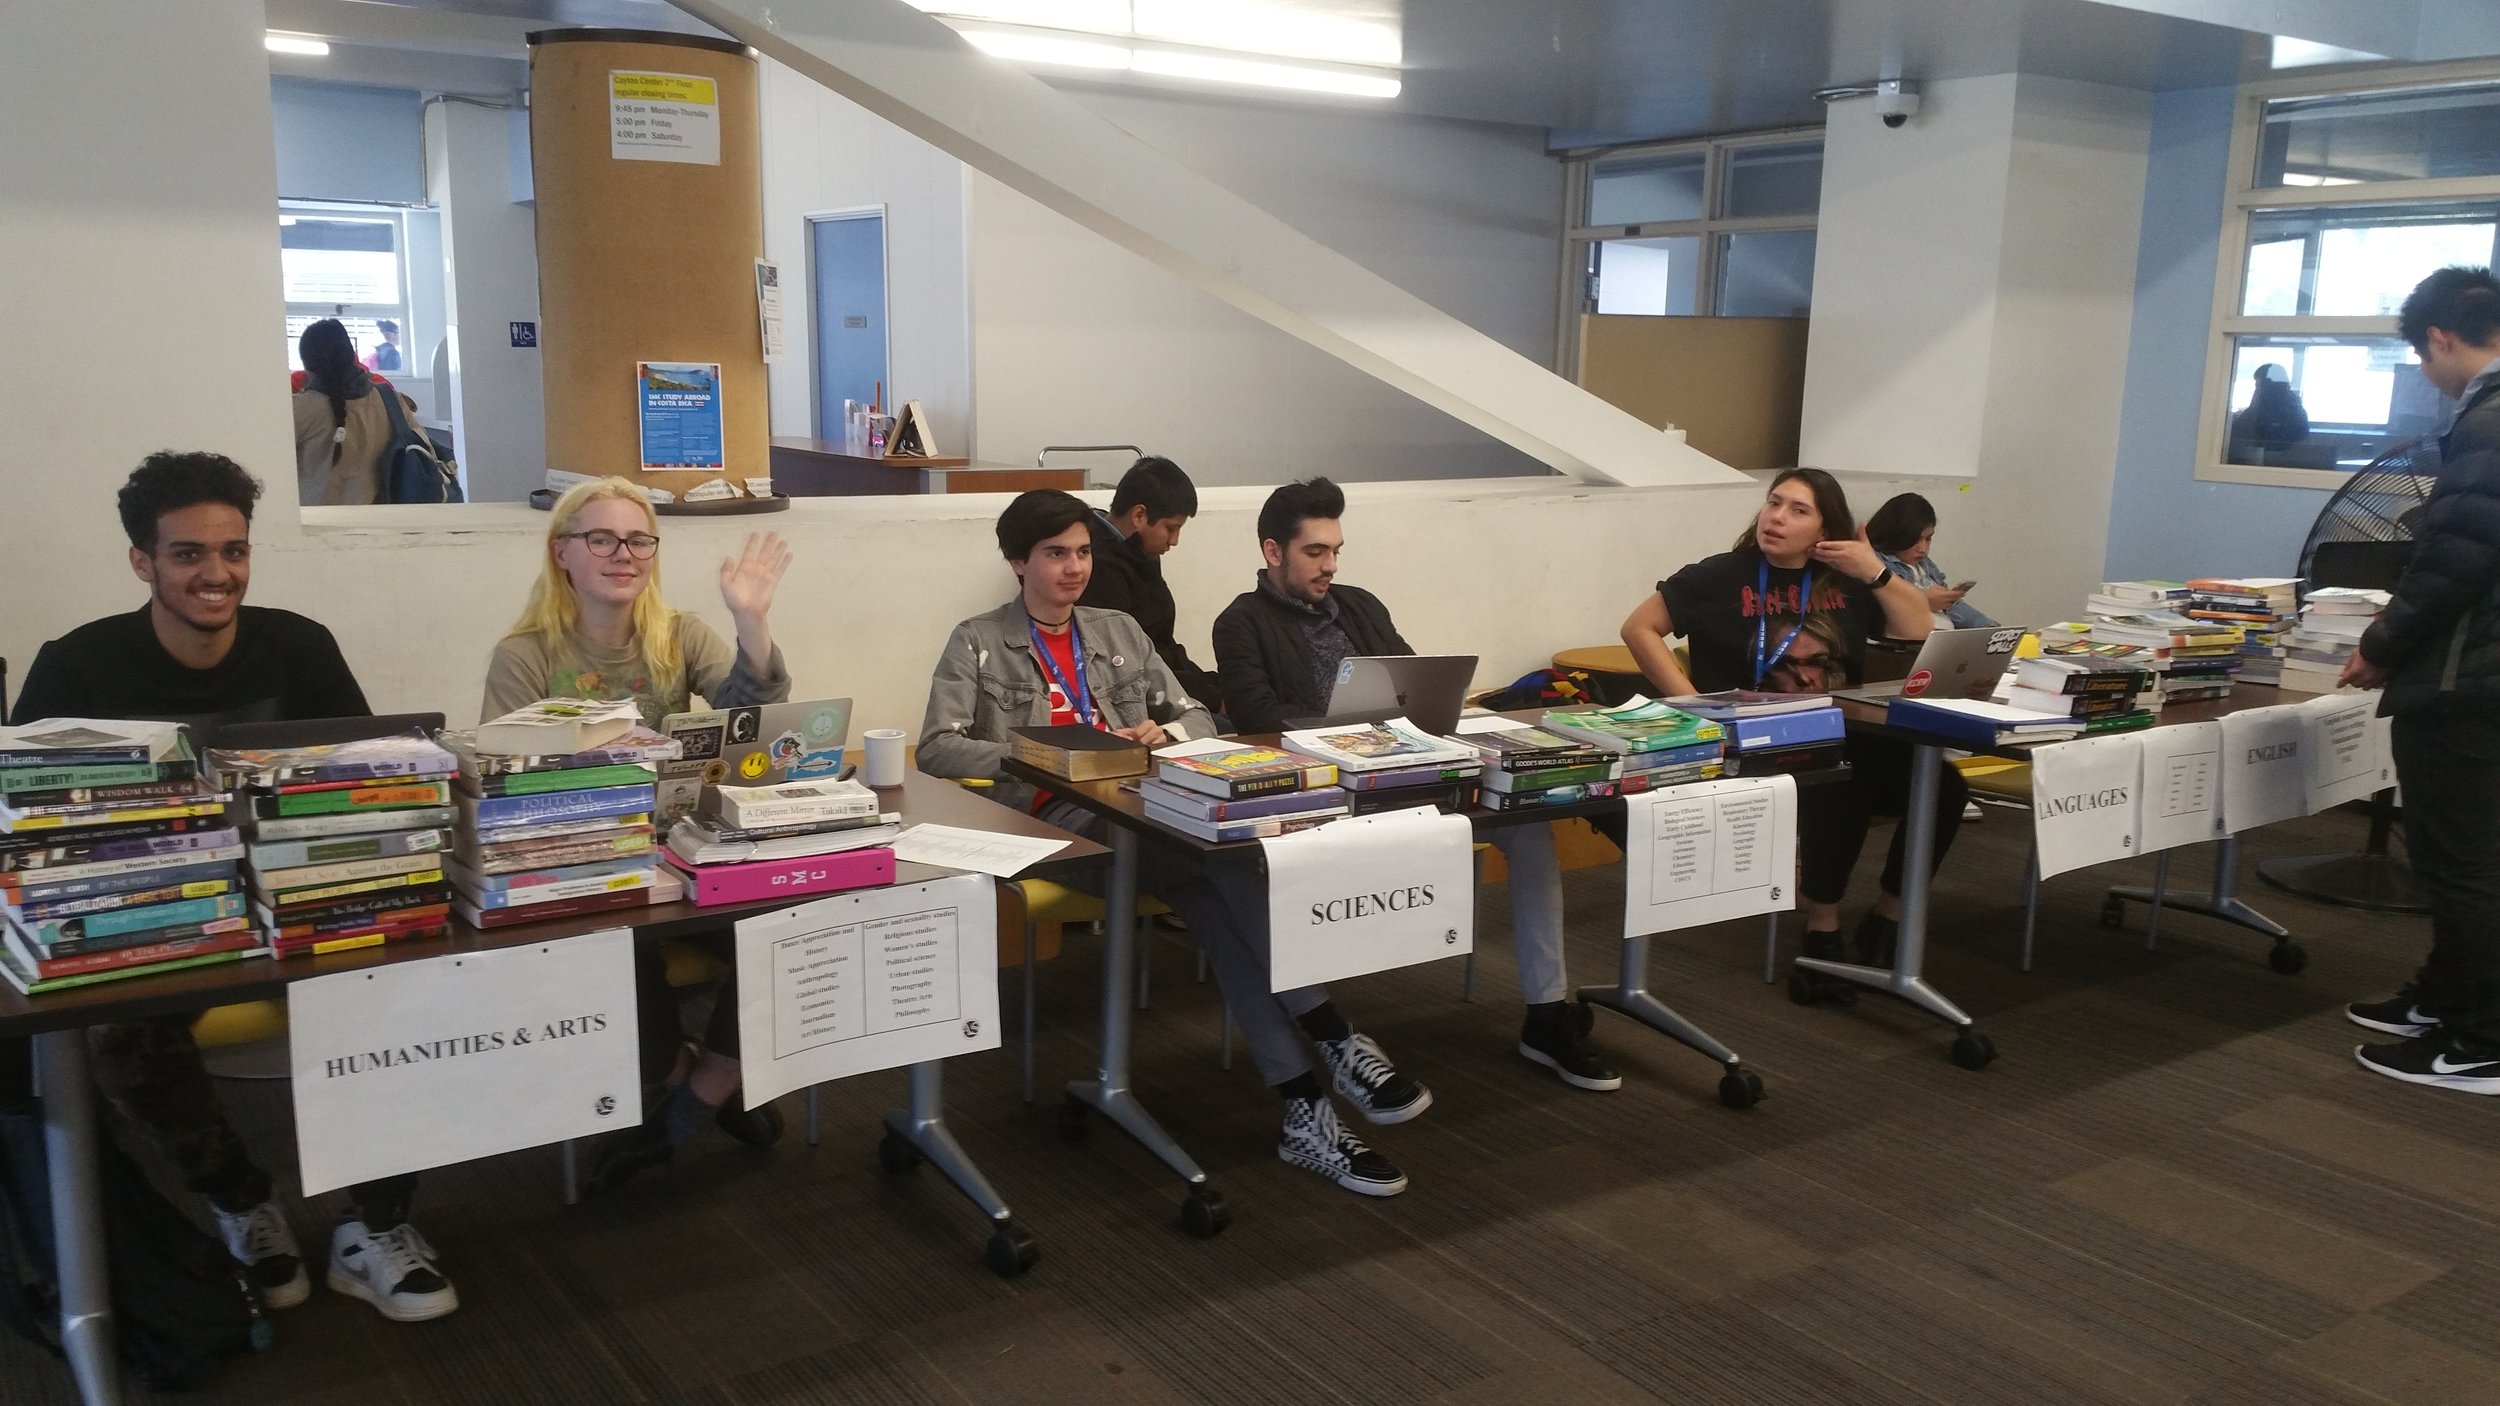 Associated Students Book Fair staff oversee secondhand books put on sale by Santa Monica College students at the SMC Cayton Center, February 19, 2019 in Santa Monica, California. Joshua Gonzalez/The Corsair